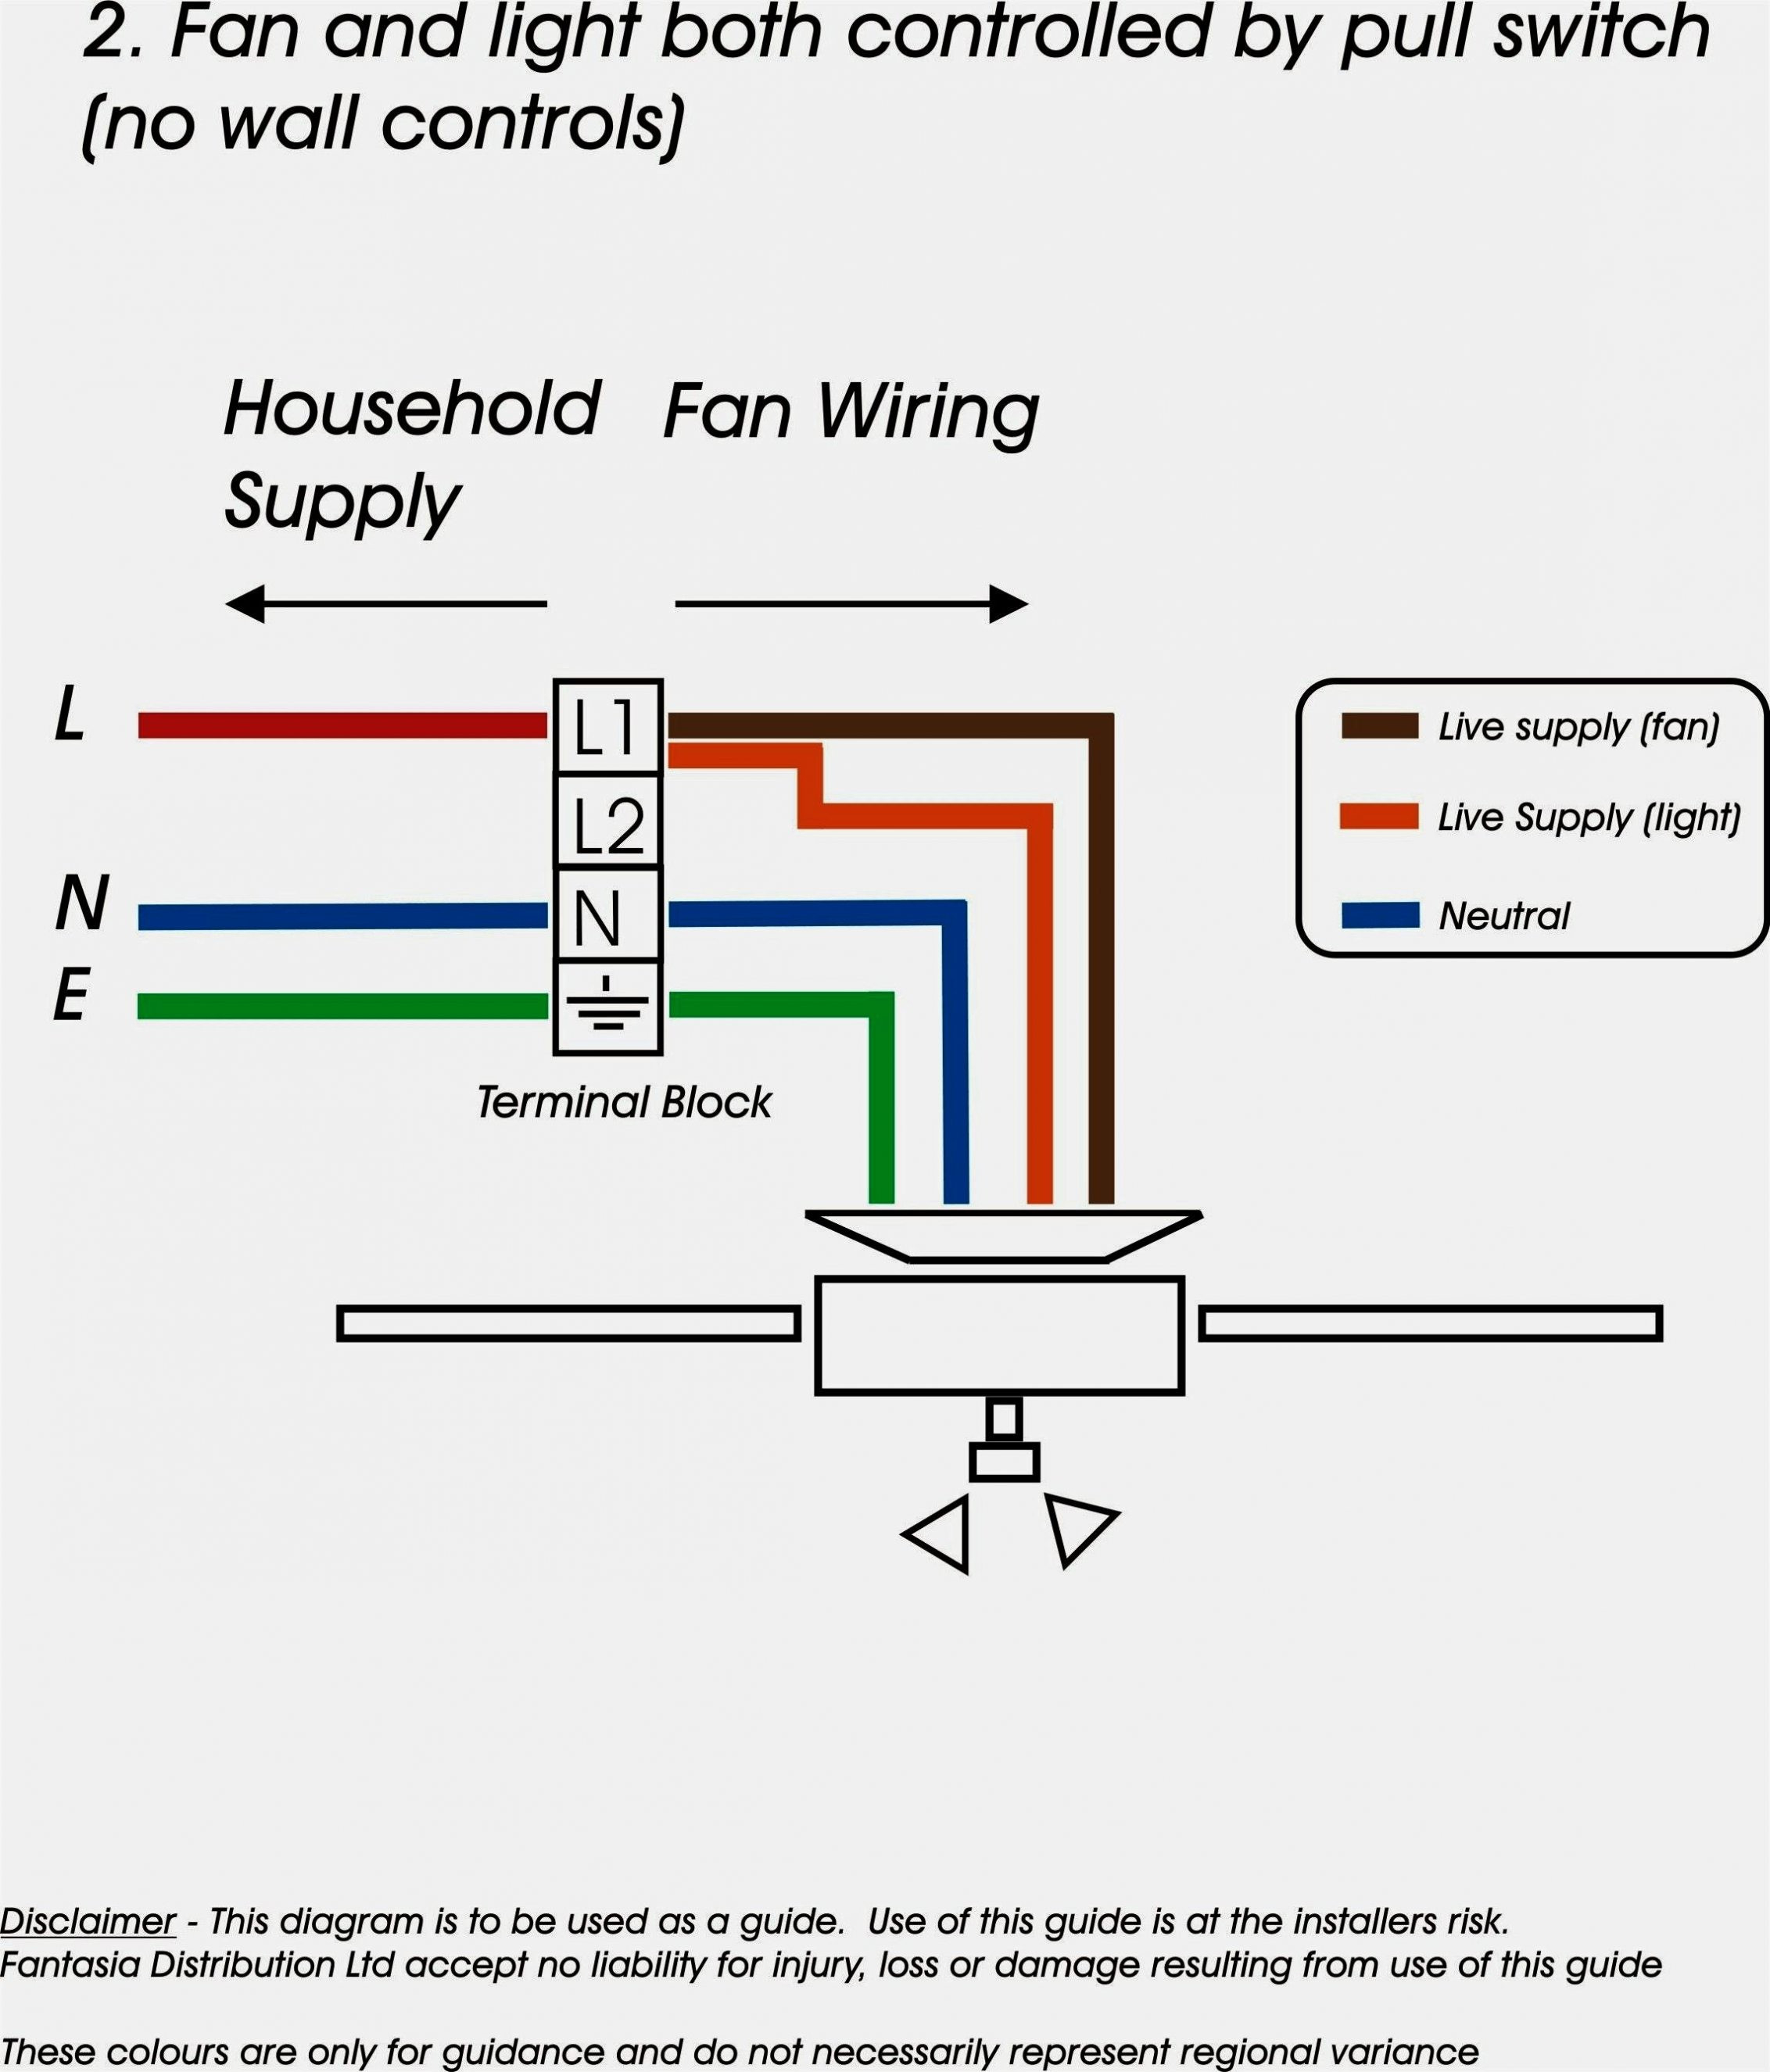 wiring diagram 3 way switch ceiling fan and light Collection-Ceiling Fan Pull Chain Switch Wiring Diagram Best 3 Speed New Hunter 18 9-c